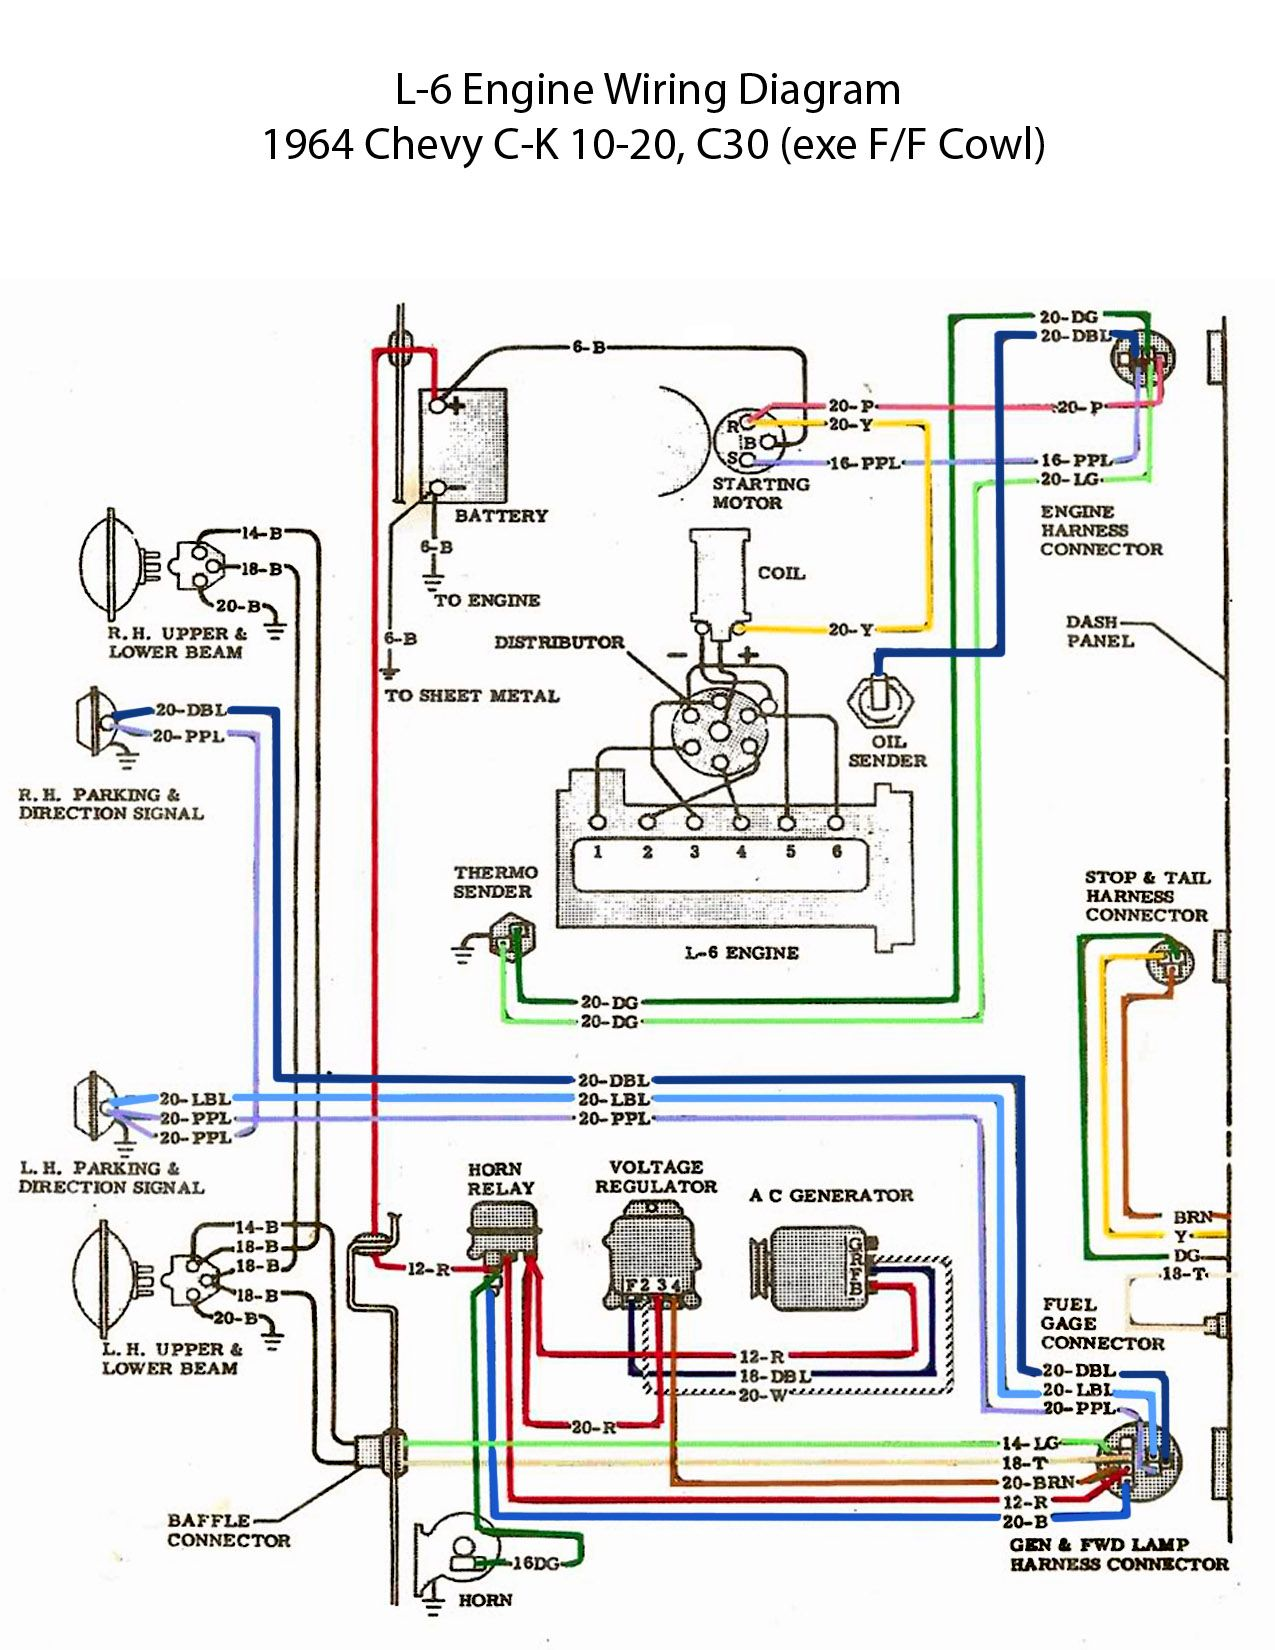 Stupendous Electric L 6 Engine Wiring Diagram 60S Chevy C10 Wiring Wiring Cloud Xeiraioscosaoduqqnet